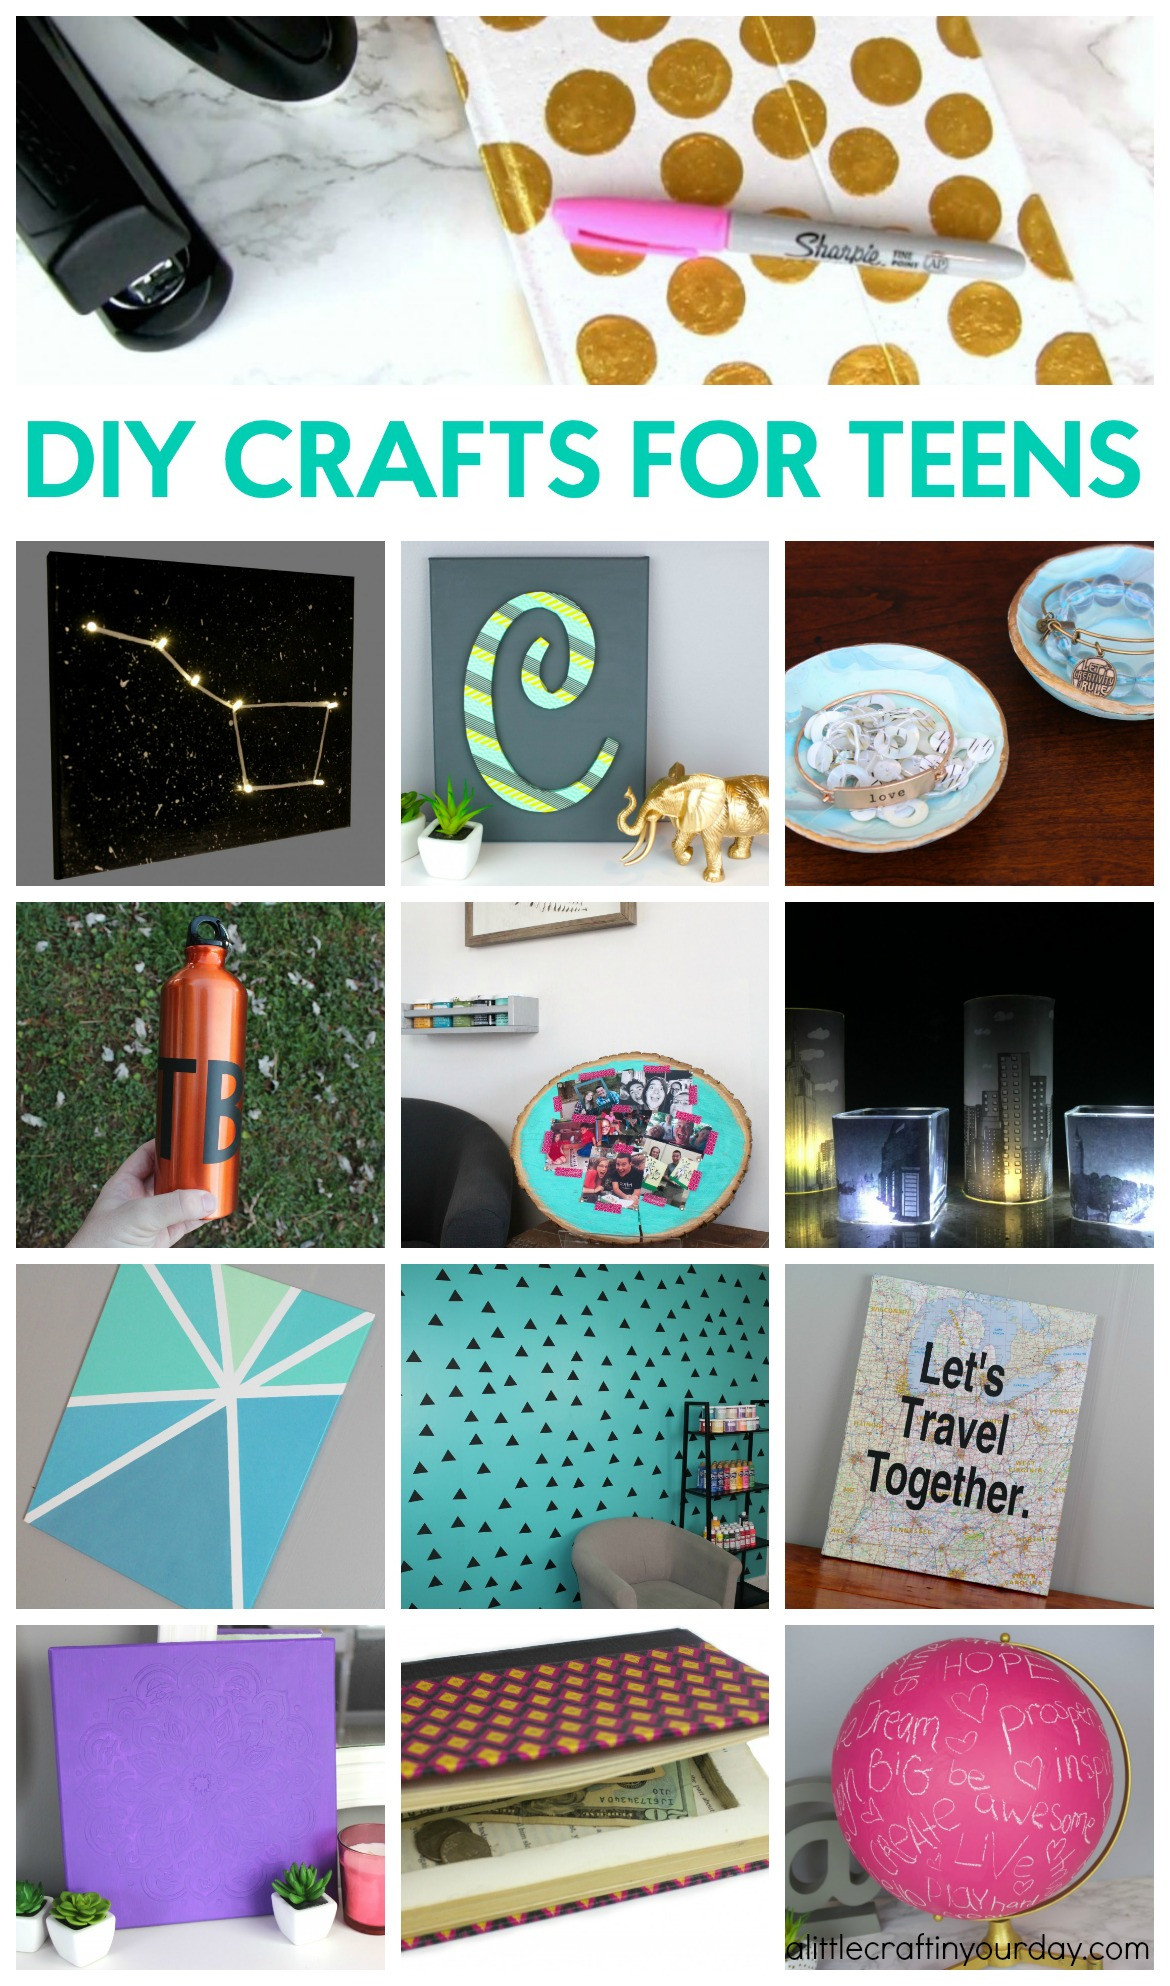 Best ideas about Craft Ideas For Teens . Save or Pin DIY Crafts for Teens A Little Craft In Your Day Now.